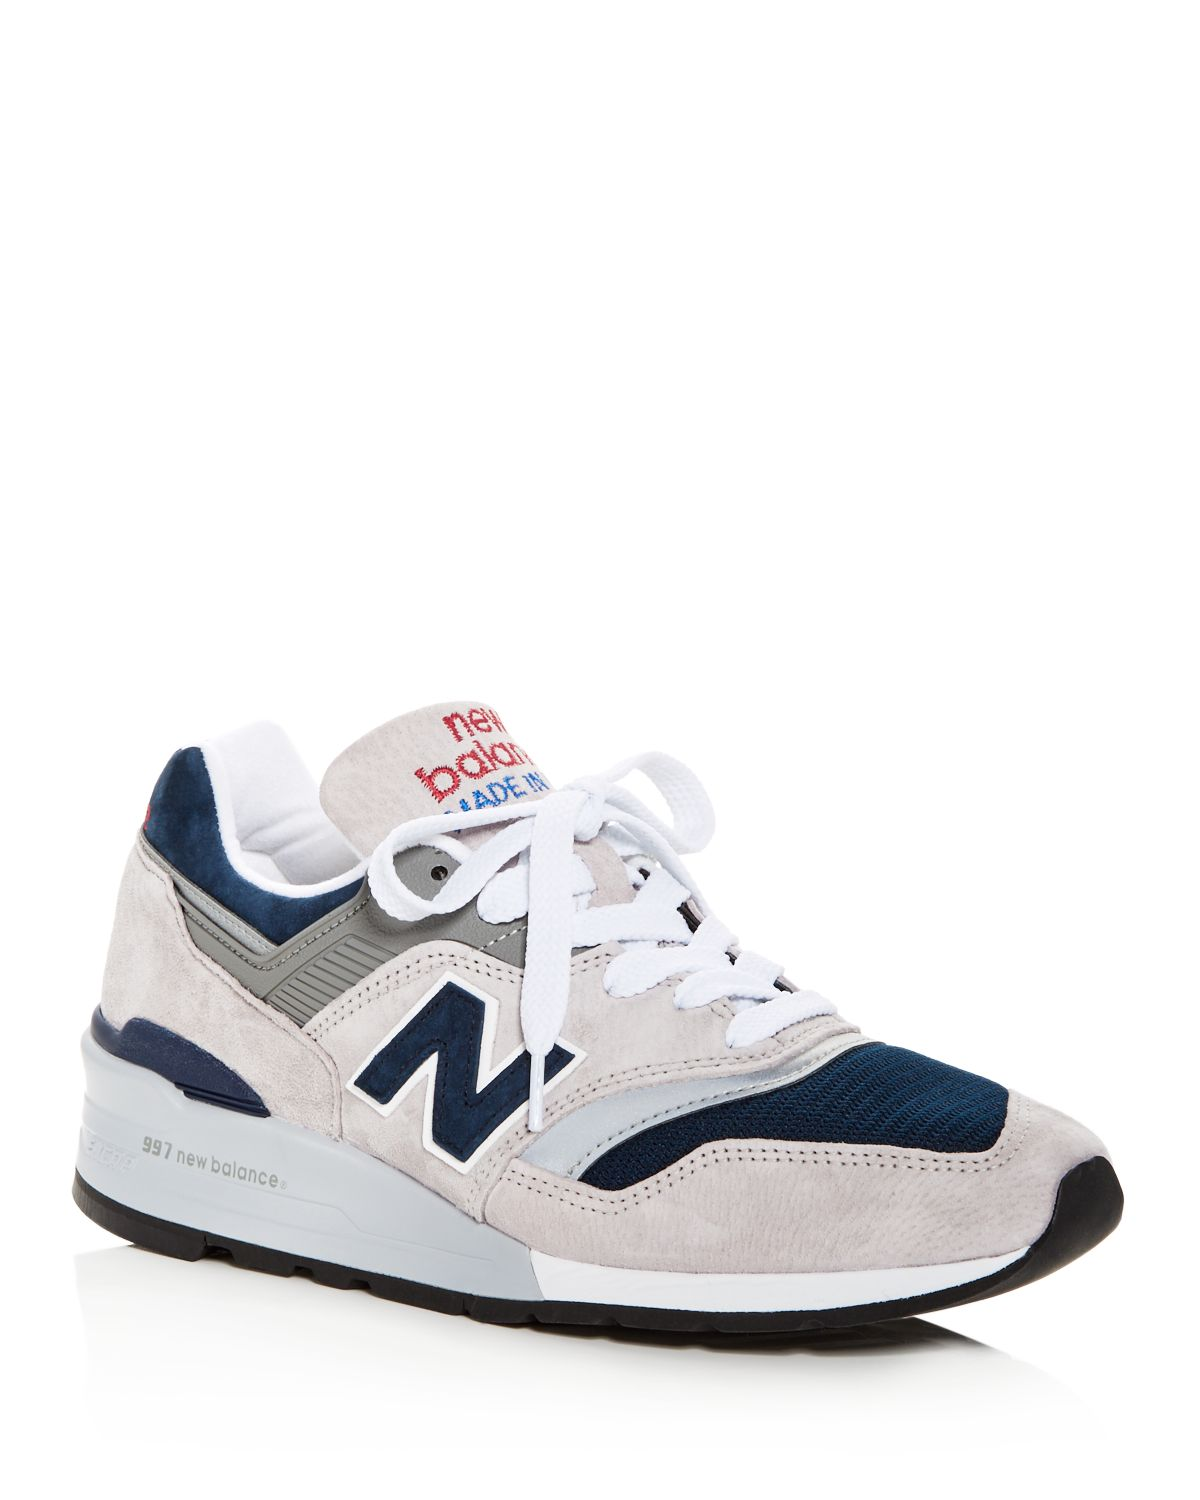 New Balance Men's 997 Made in Usa Suede Lace Up Sneakers